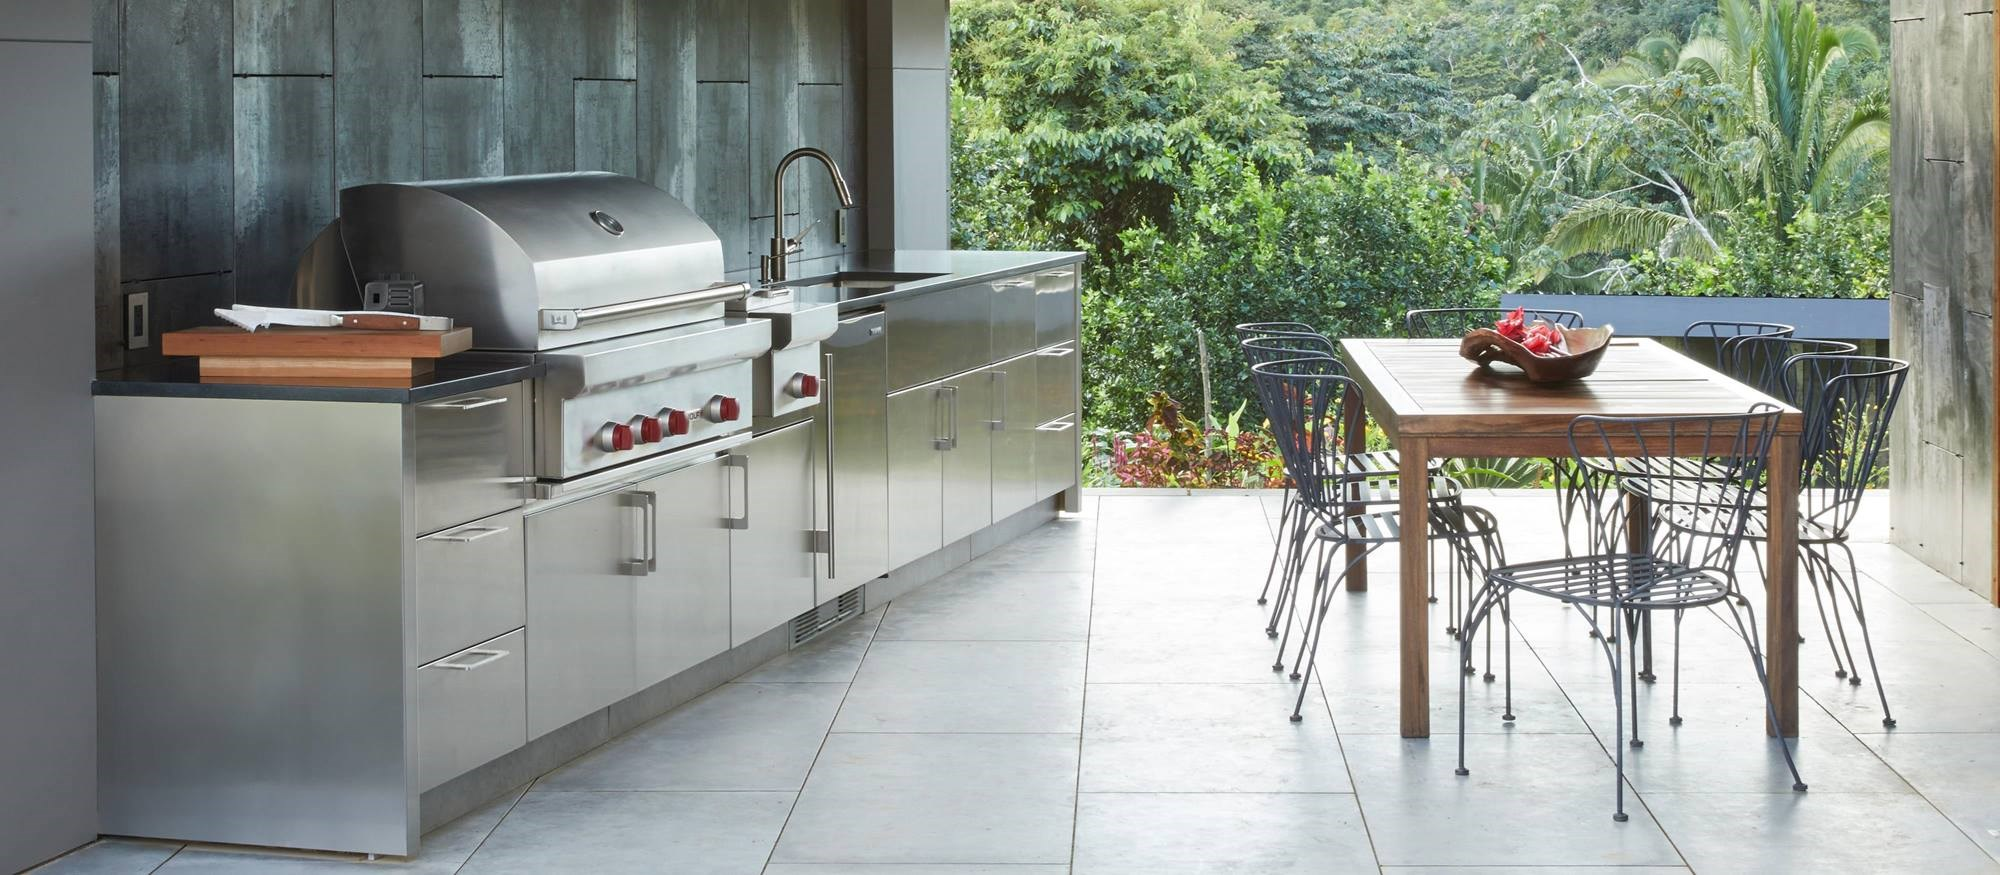 wolf-grill-built-in-outdoor-patio